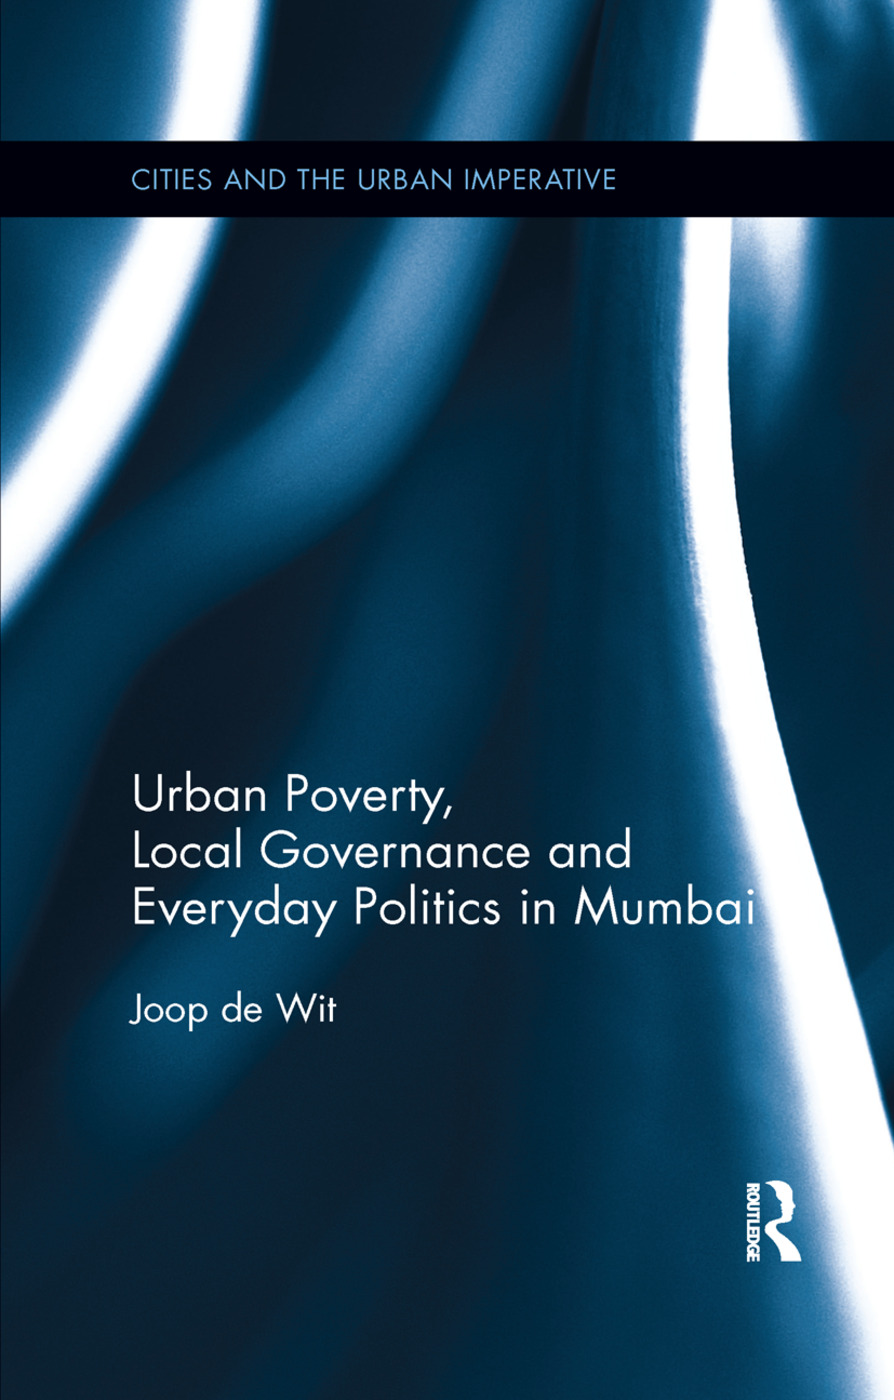 Urban Poverty, Local Governance and Everyday Politics in Mumbai: 1st Edition (Paperback) book cover